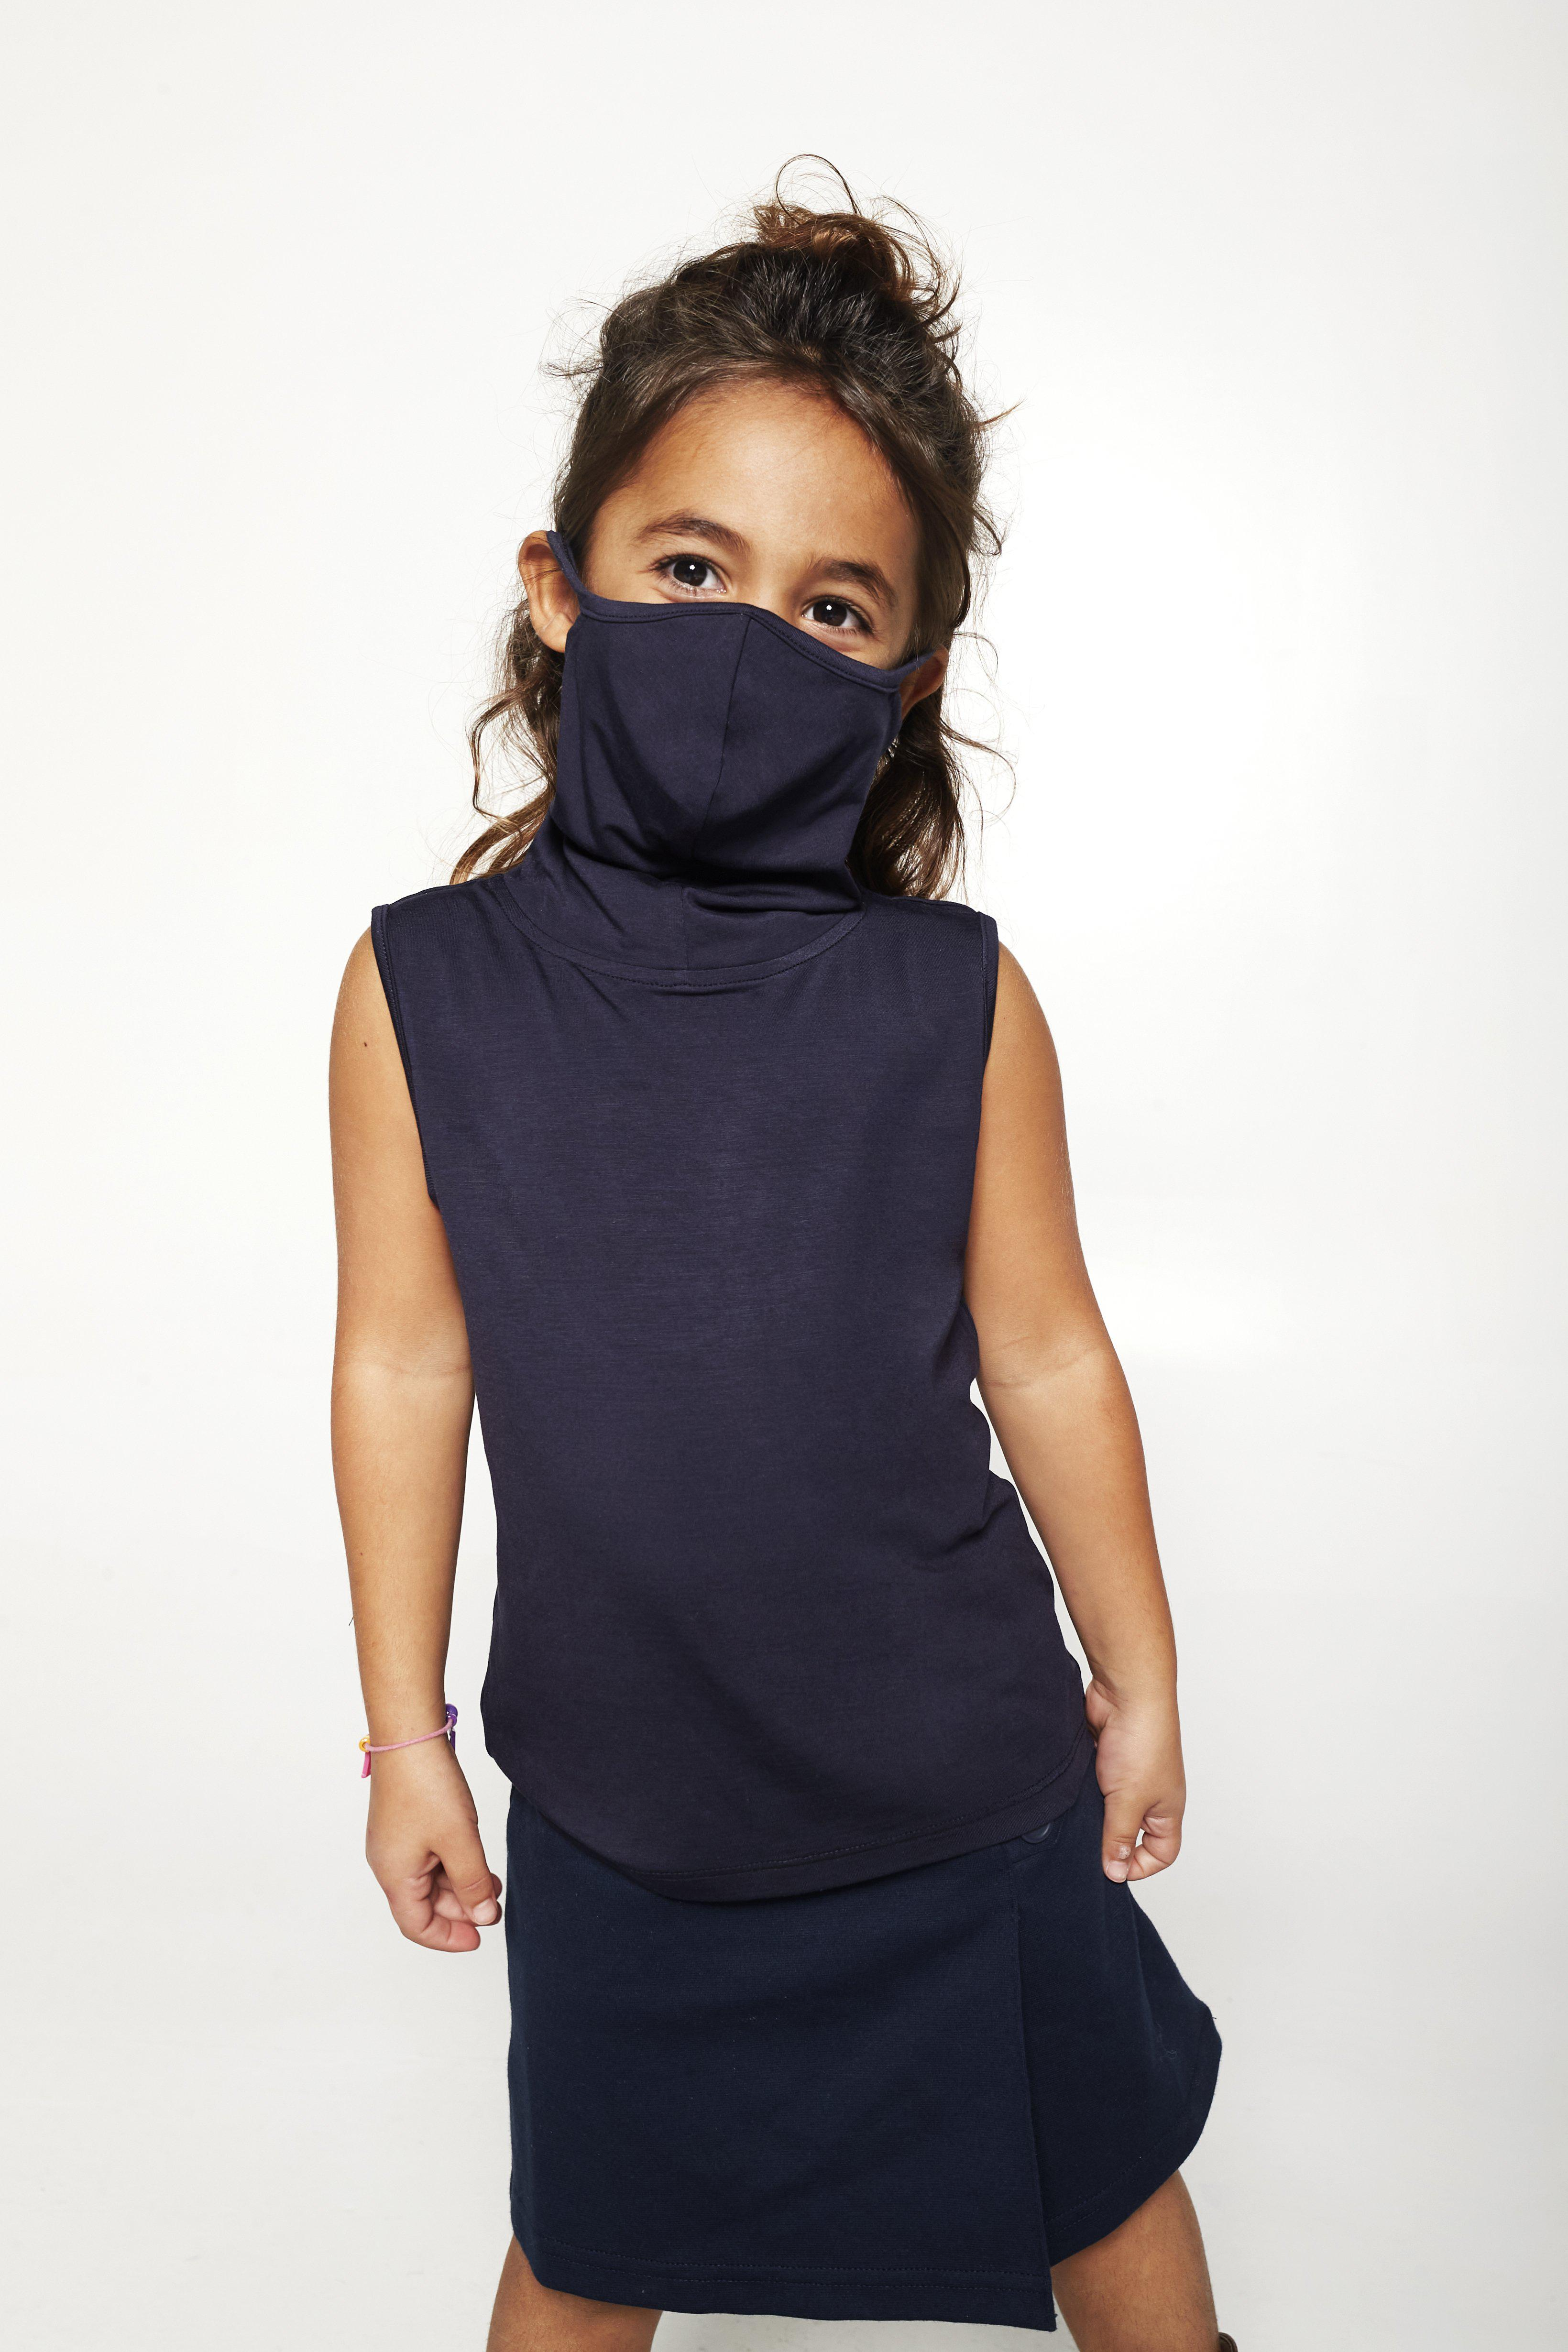 Kids Sleeveless Navy Shmask™ Earloop Face Mask for Kids and Adults